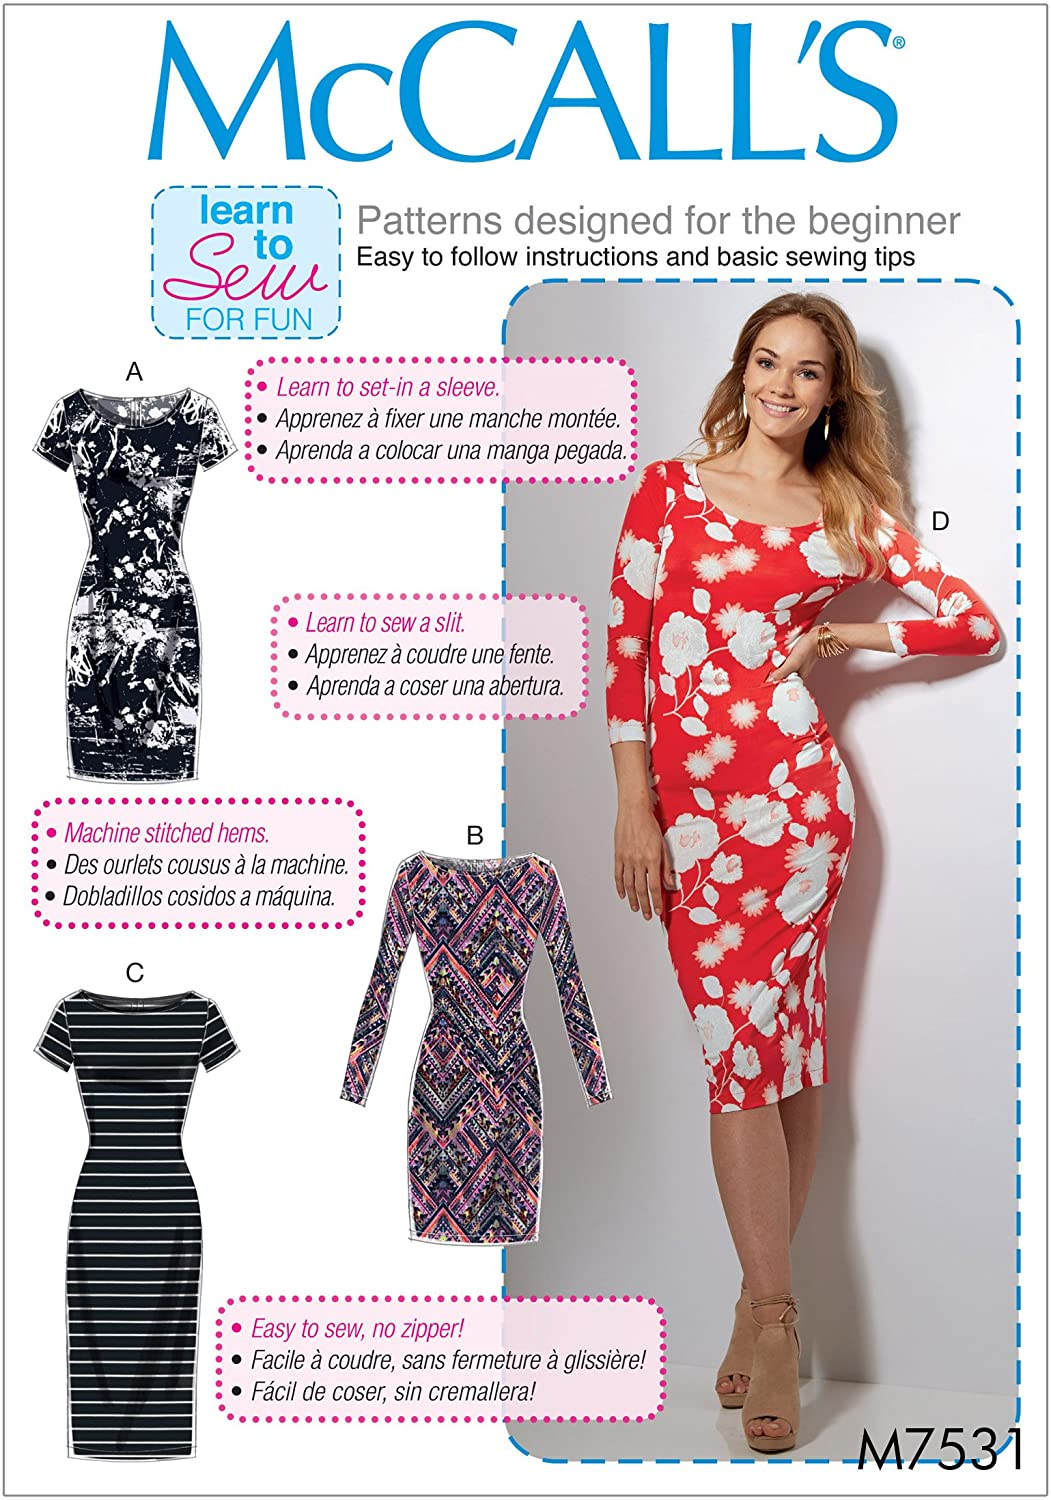 McCall's Patterns Bodycon Dresses Sewing Pattern